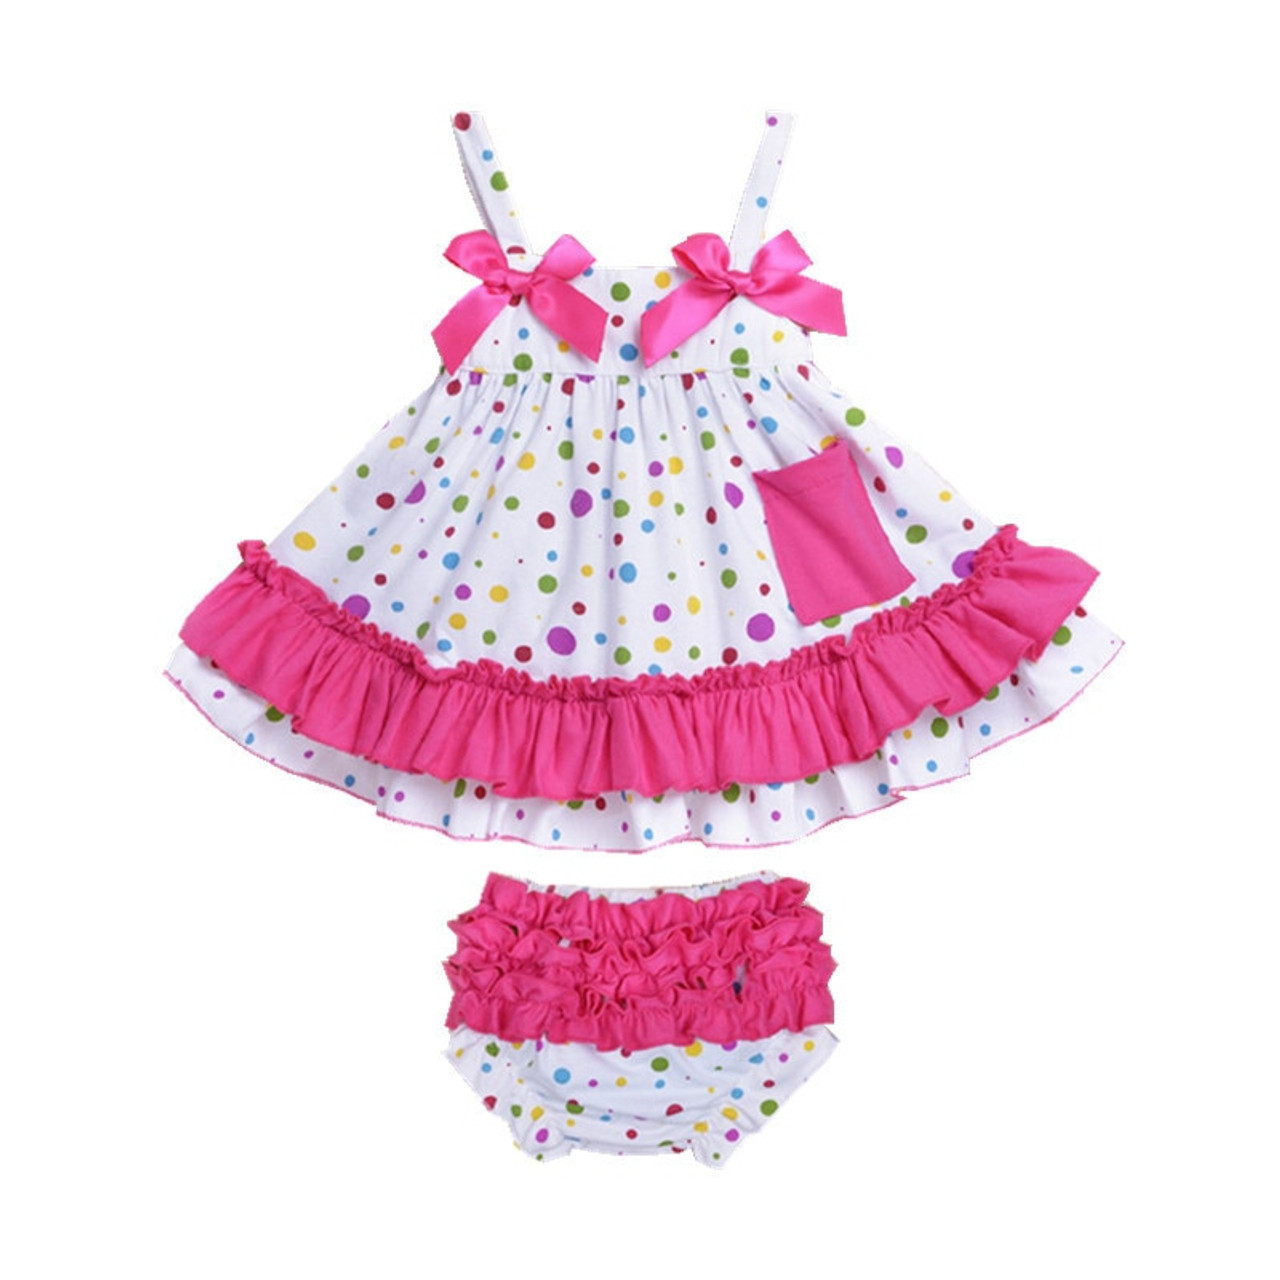 d52486d80e45 2018 Summer Baby Clothing Newborn Baby Girl Clothes Dress Infant ...